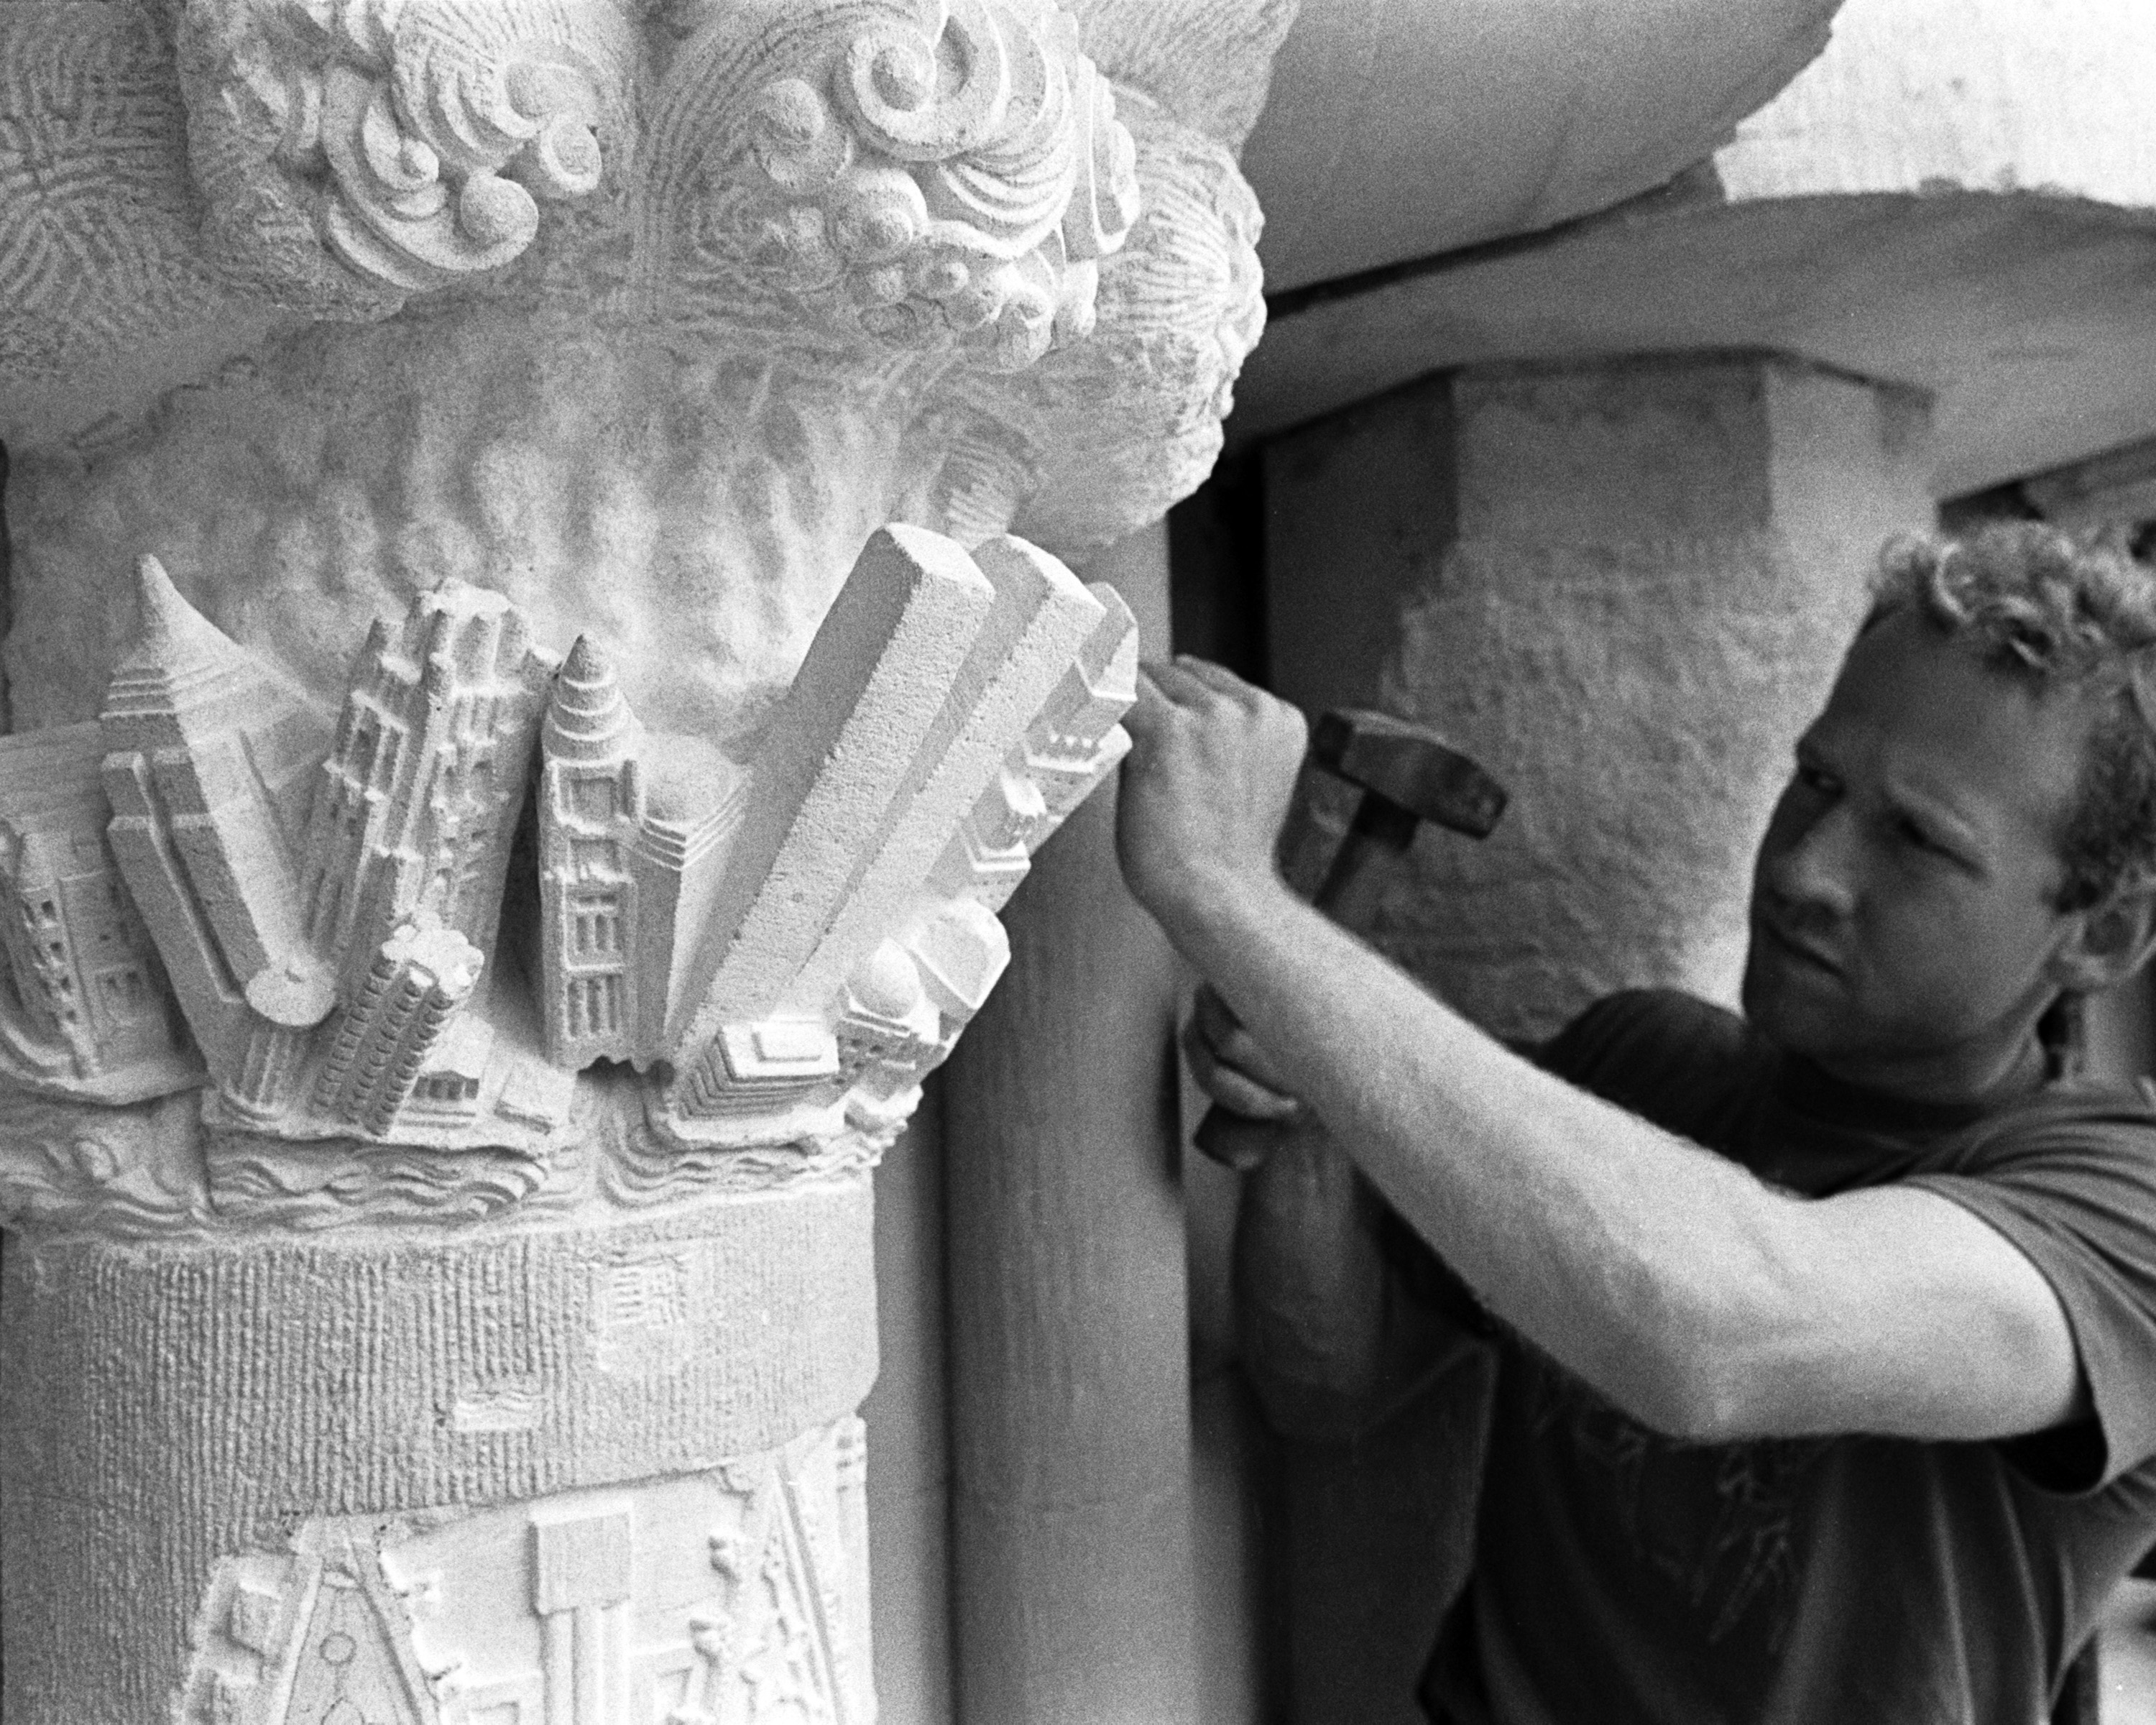 2)	Roughing out statue blocks placed in 1920's of Cathedral central portal, 1988 - Photo: Robert Rodriguez